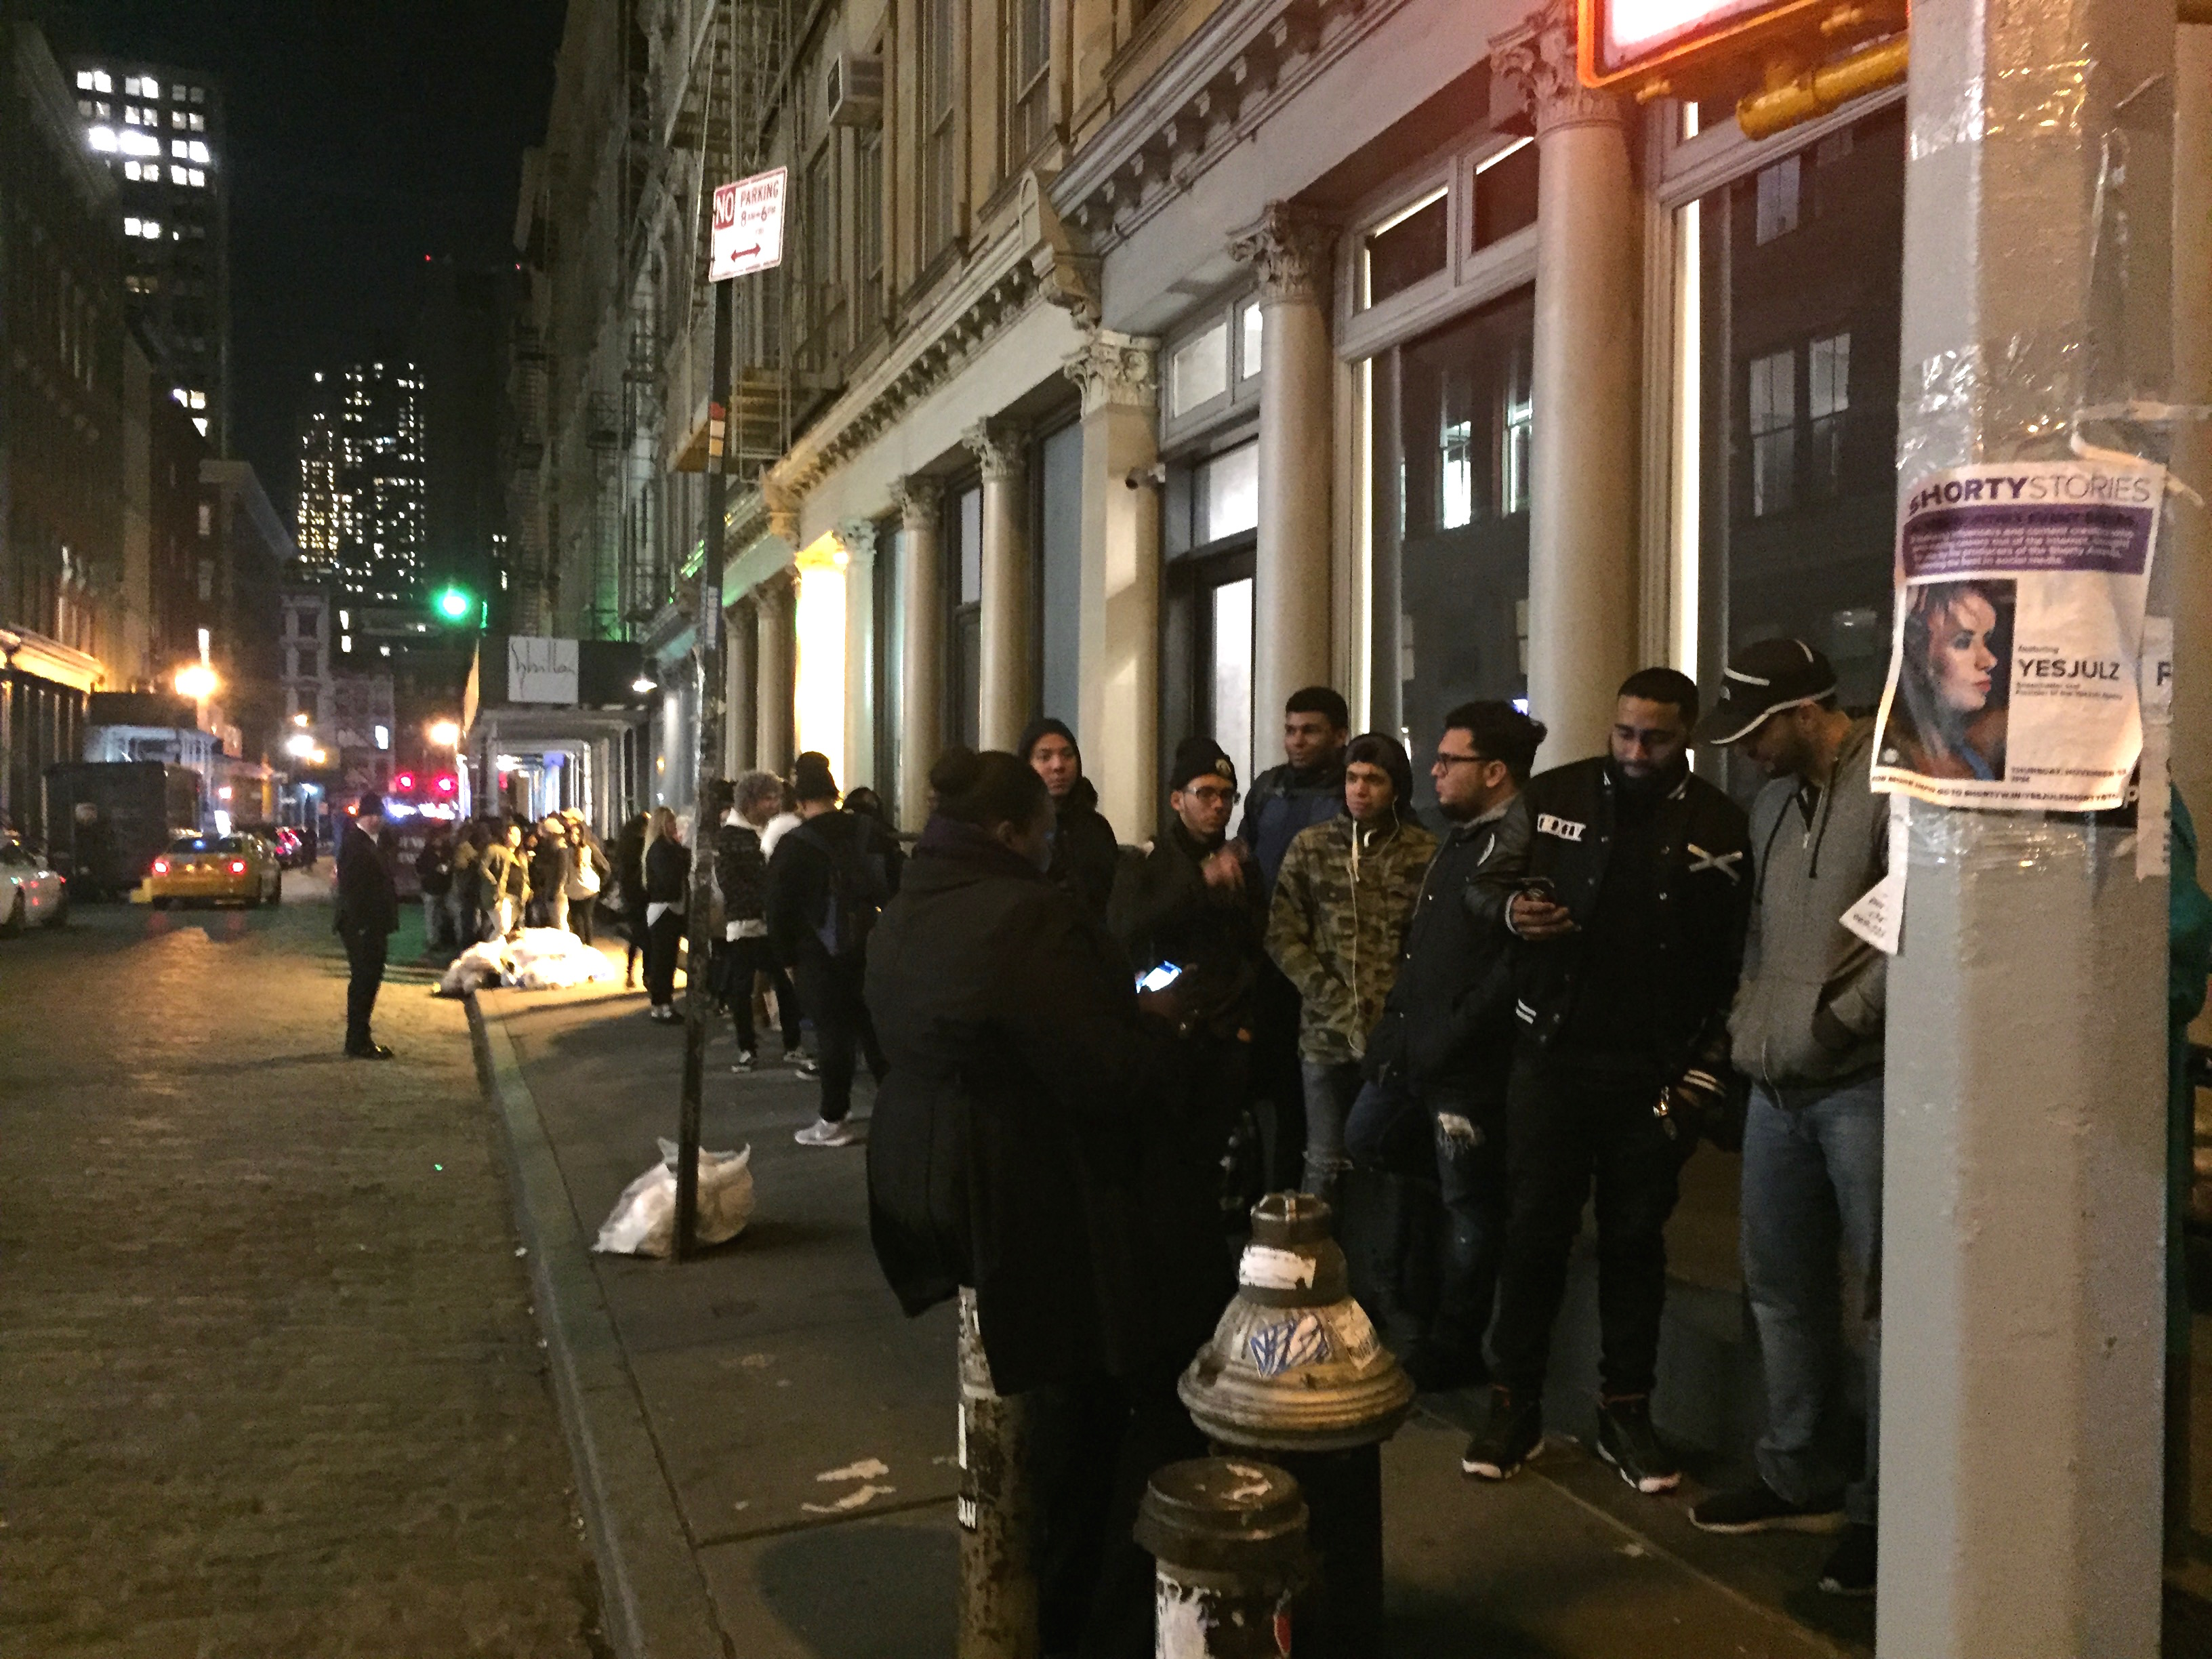 Alexander Wang and The Weeknd Left Fans Disappointed at the Soho Store Last Night